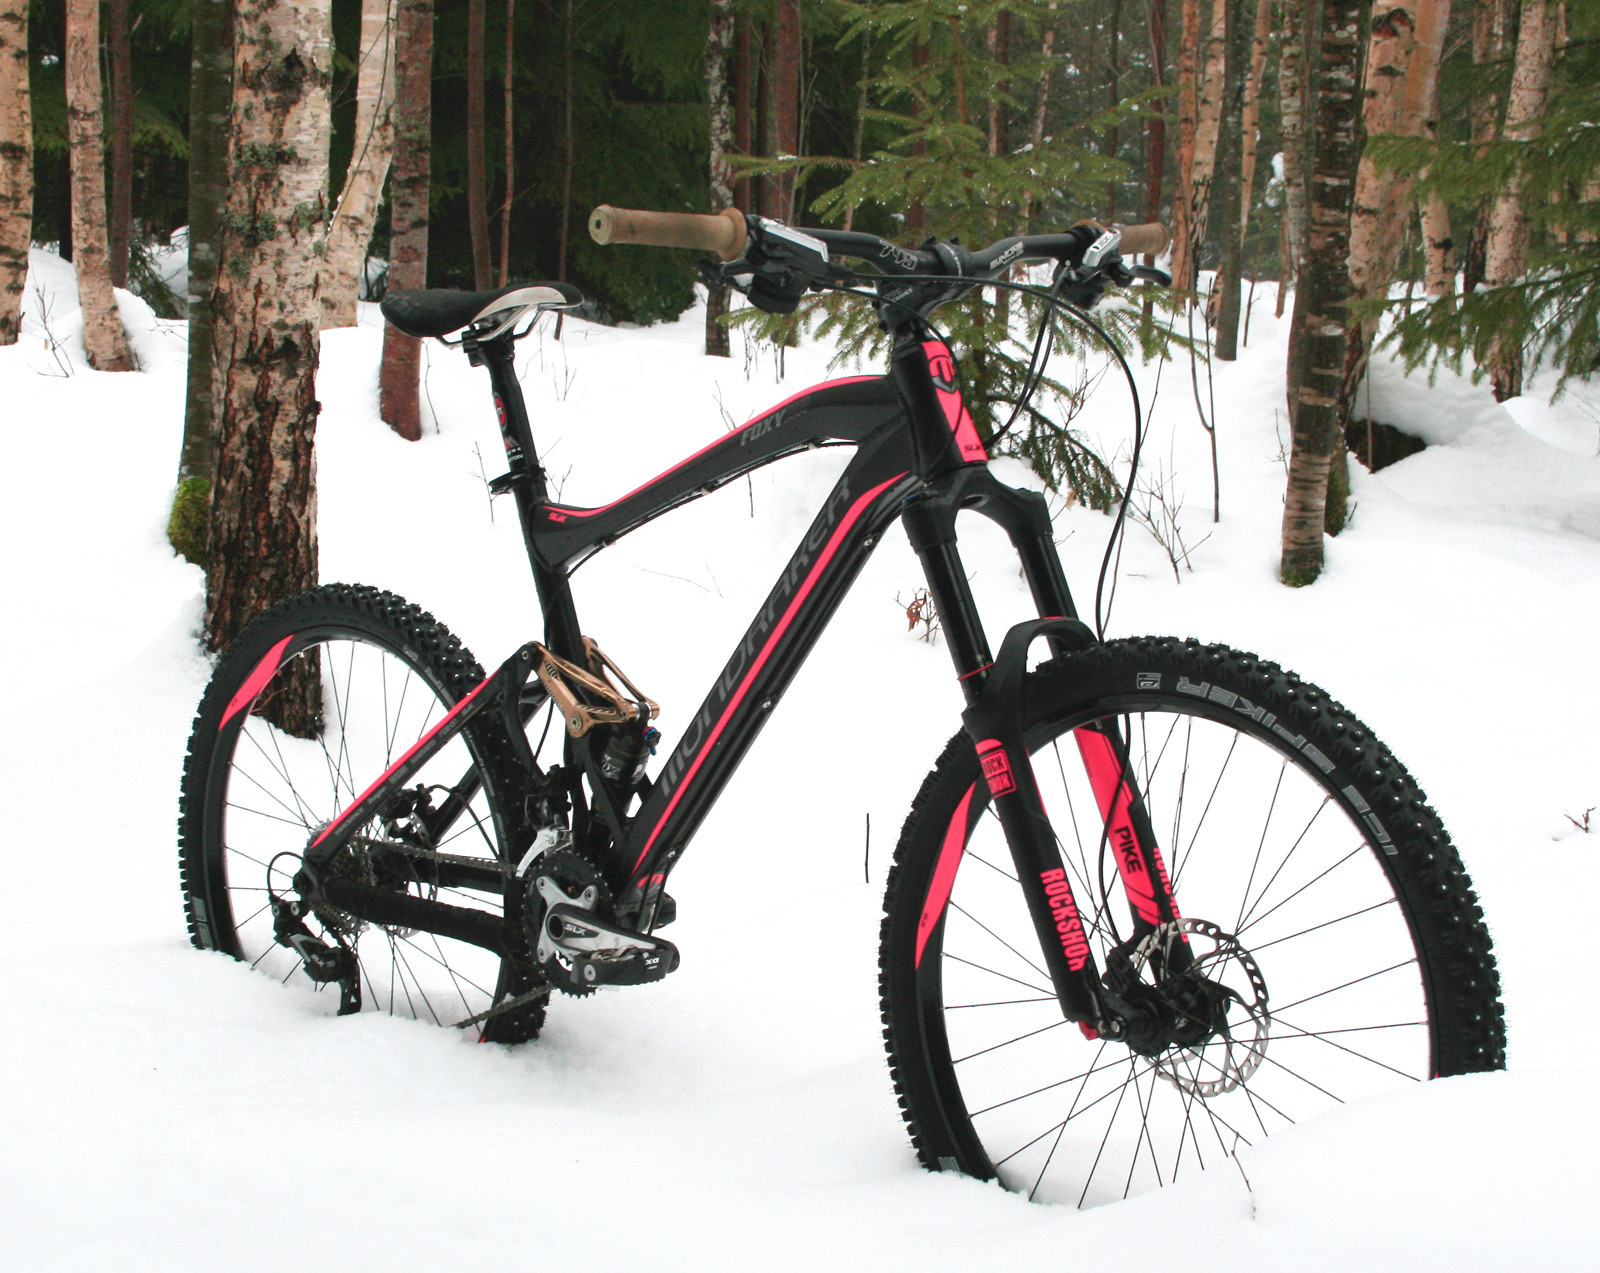 Custom Mondraker Foxy Rr By Slik Graphics Winter Neon